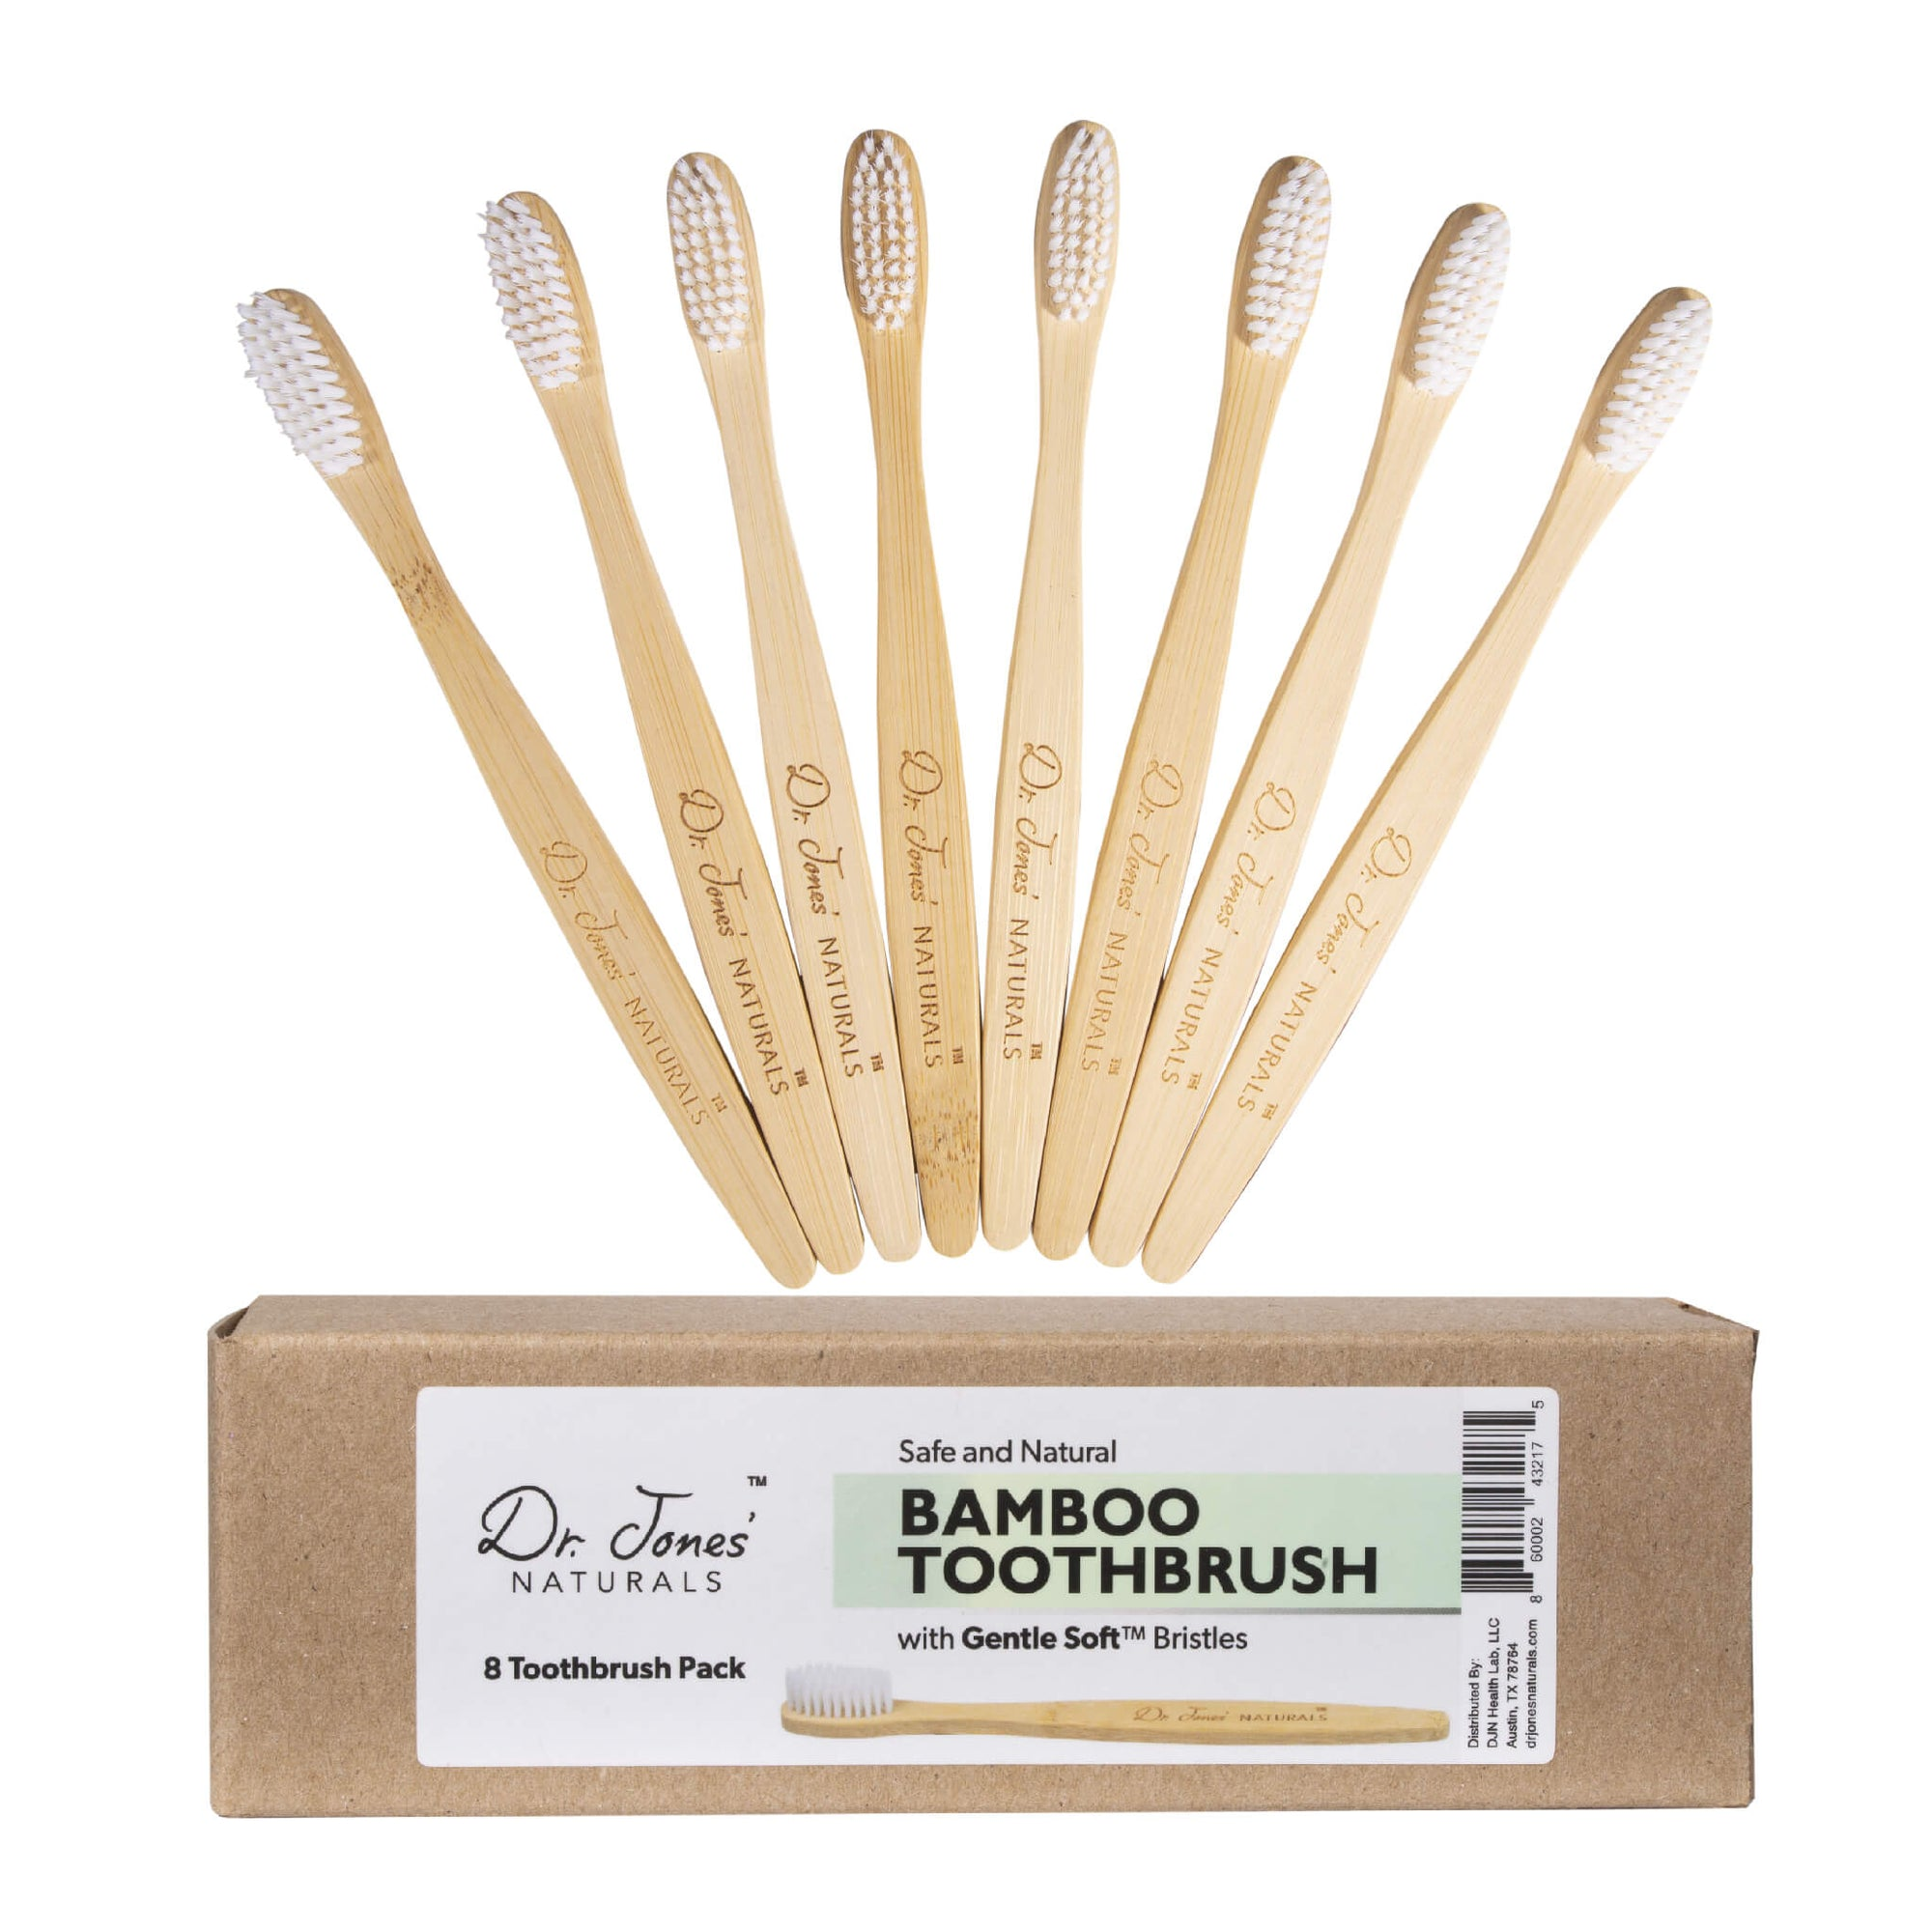 Bamboo Gentle-Soft Toothbrush Pack